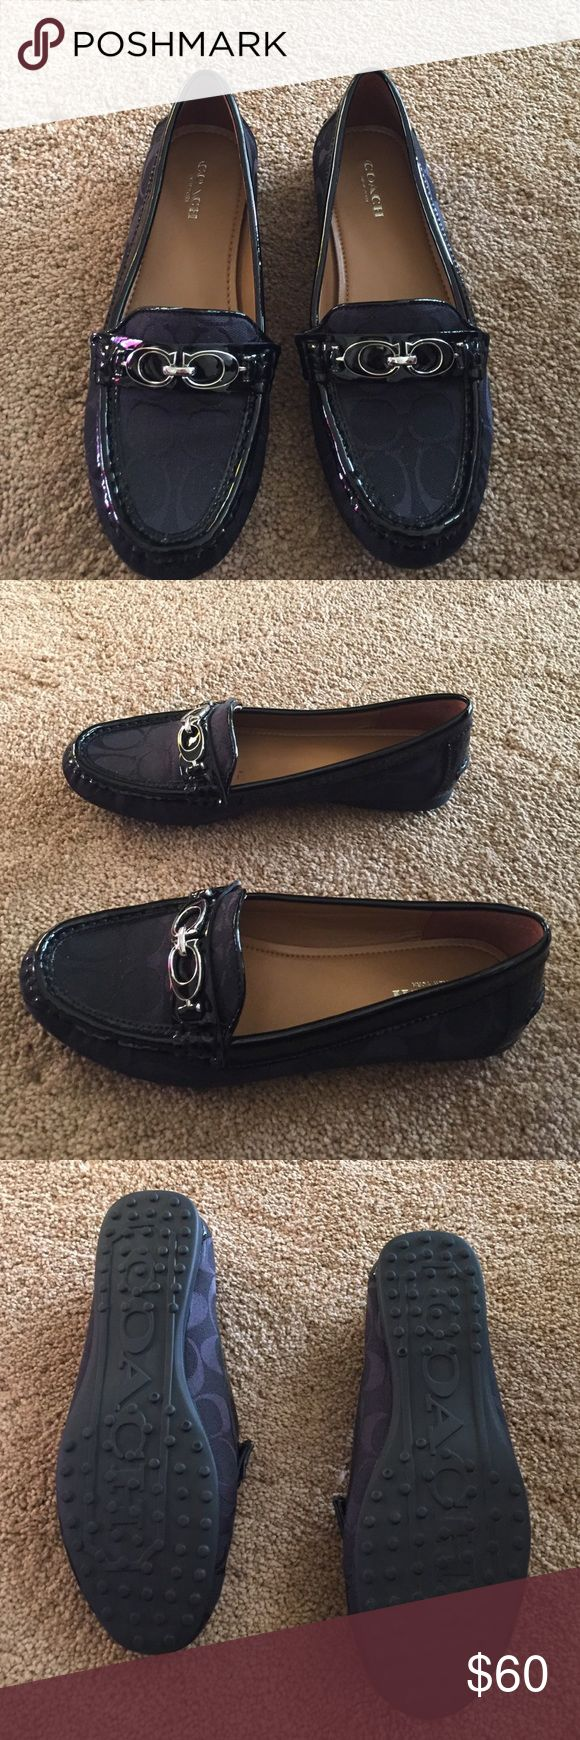 Coach flats Worn once but still in excellent condition. These shoes are so cute they are just a little too small for me. Coach Shoes Flats & Loafers